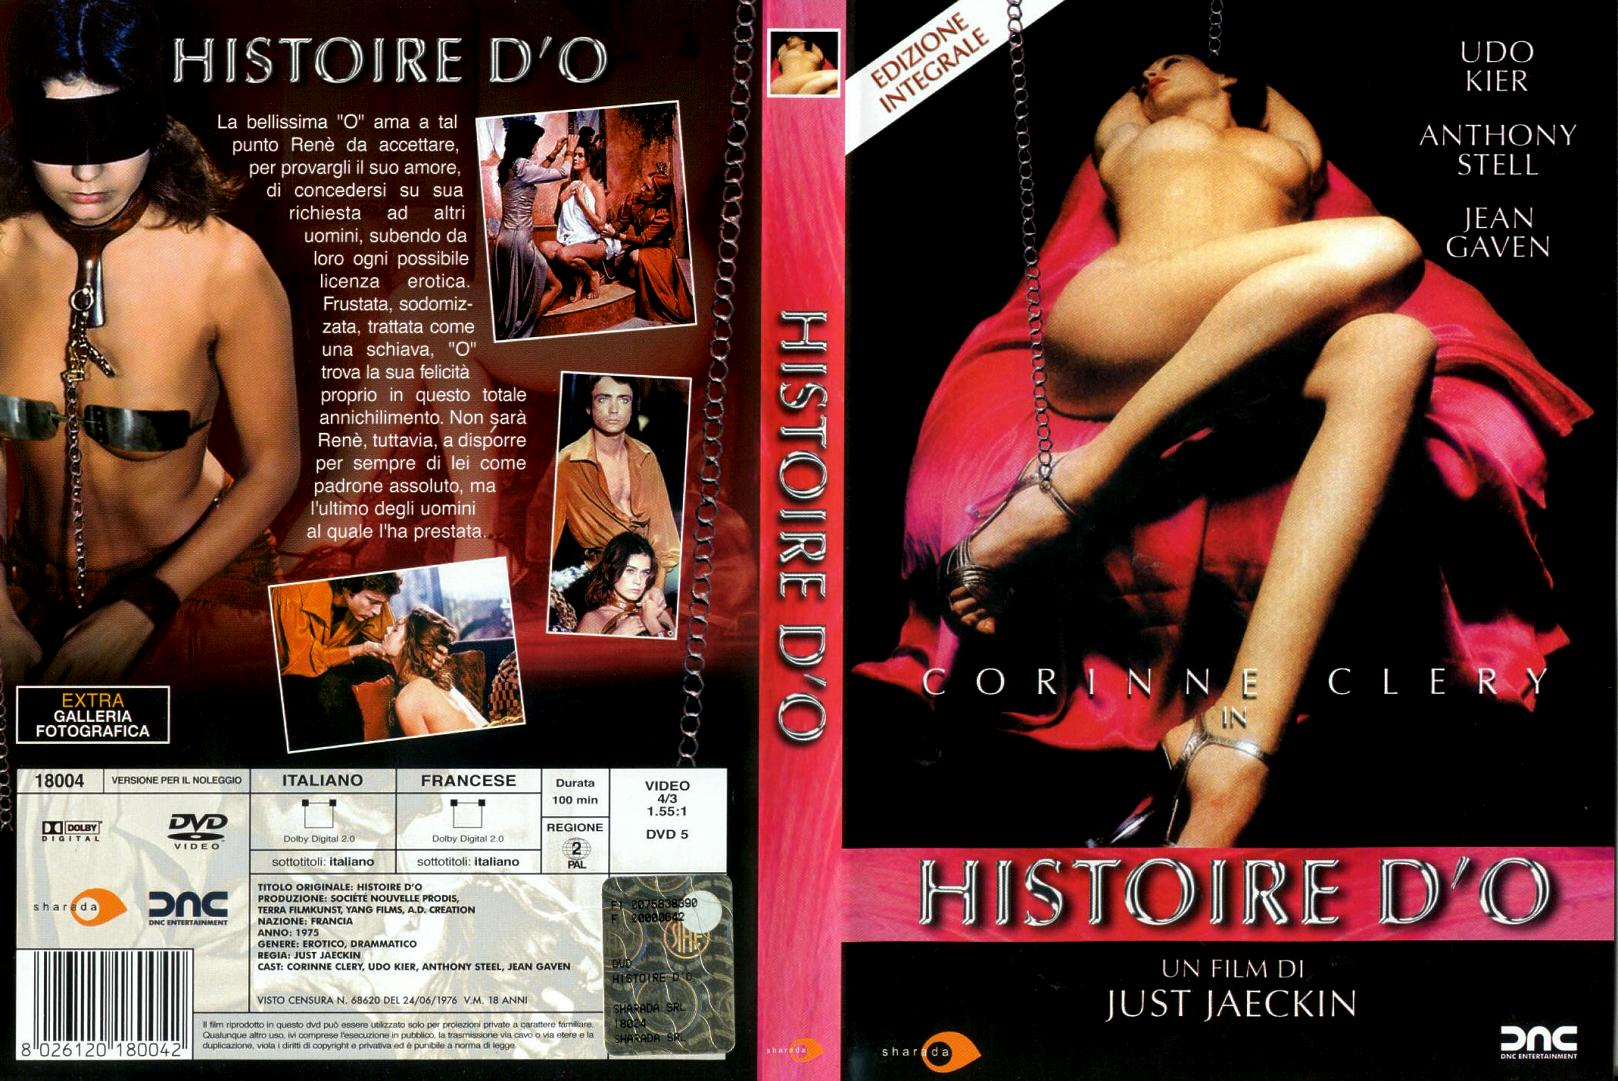 Histoire d O / The Story Of O / История  О  (Just Jaeckin, A.D. Creation, Somerville House, Terra-Filmkunst) [1975 г., Erotic, Drama, BDRip] [Rus][En][Fr] (Corinne Cléry, Udo Kier, Anthony Steel, Jean Gaven, Christiane Minazzoli,